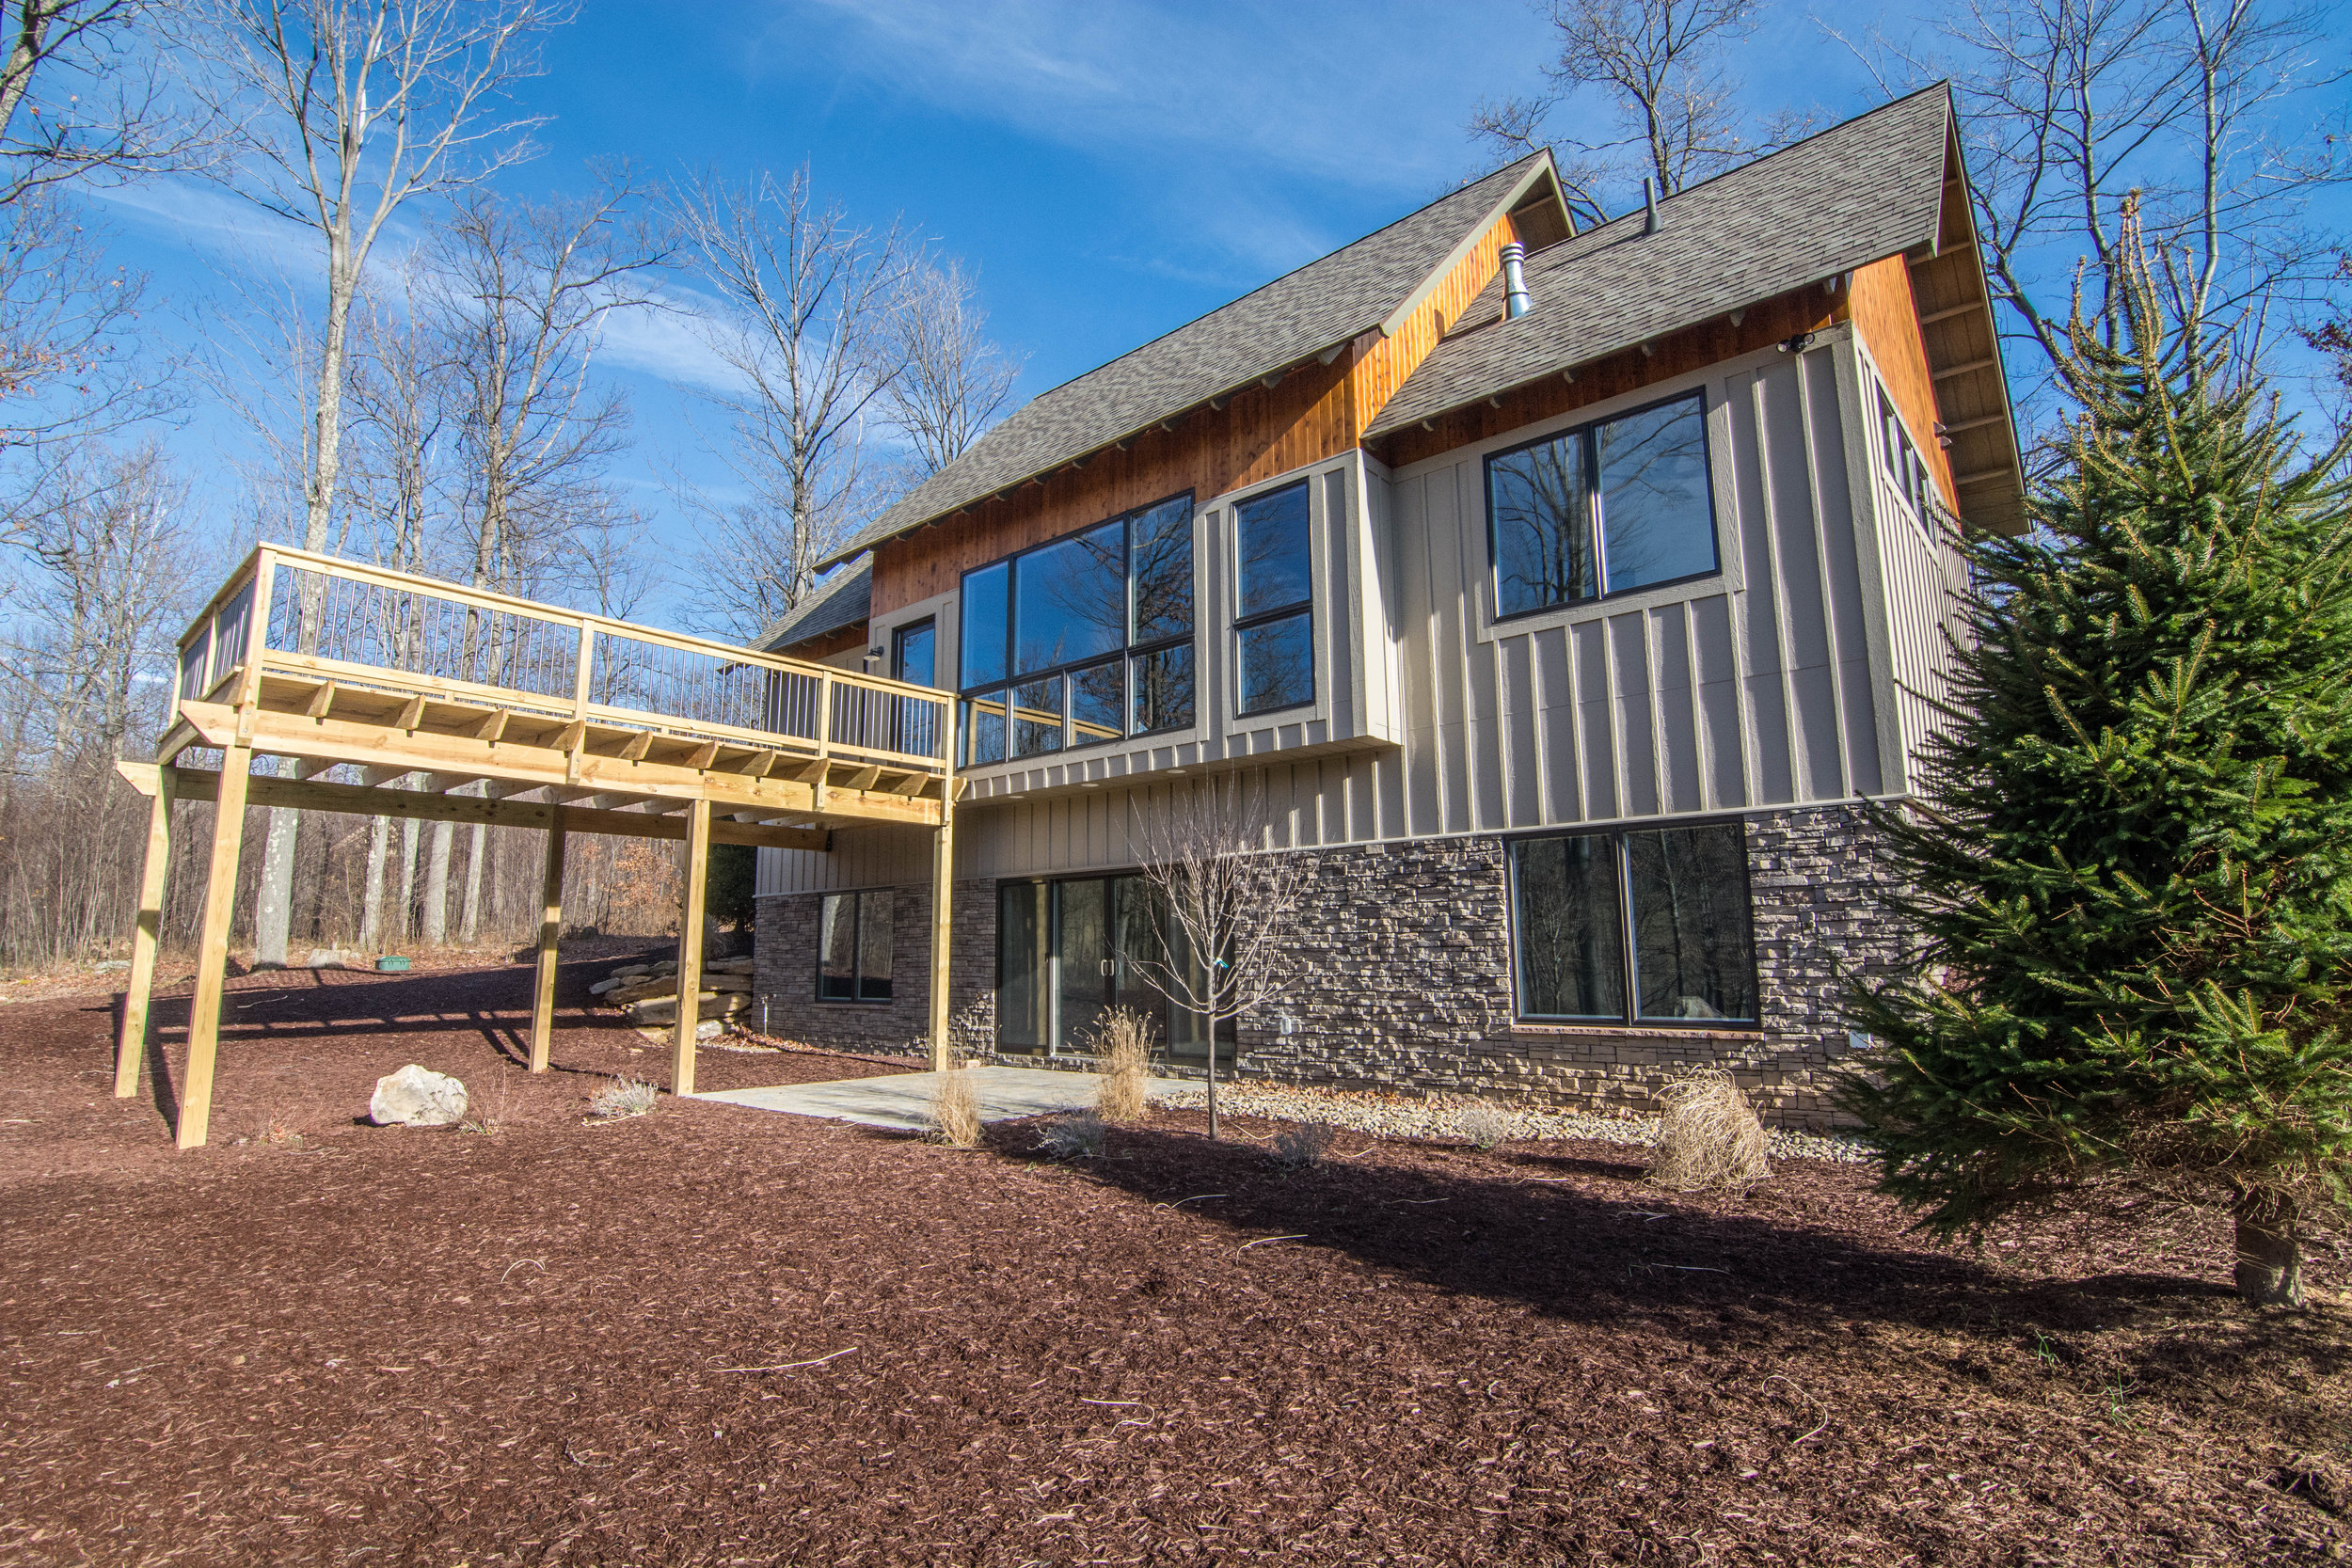 gosnell_builders_home_for_sale_ridgeview_valley10.jpg